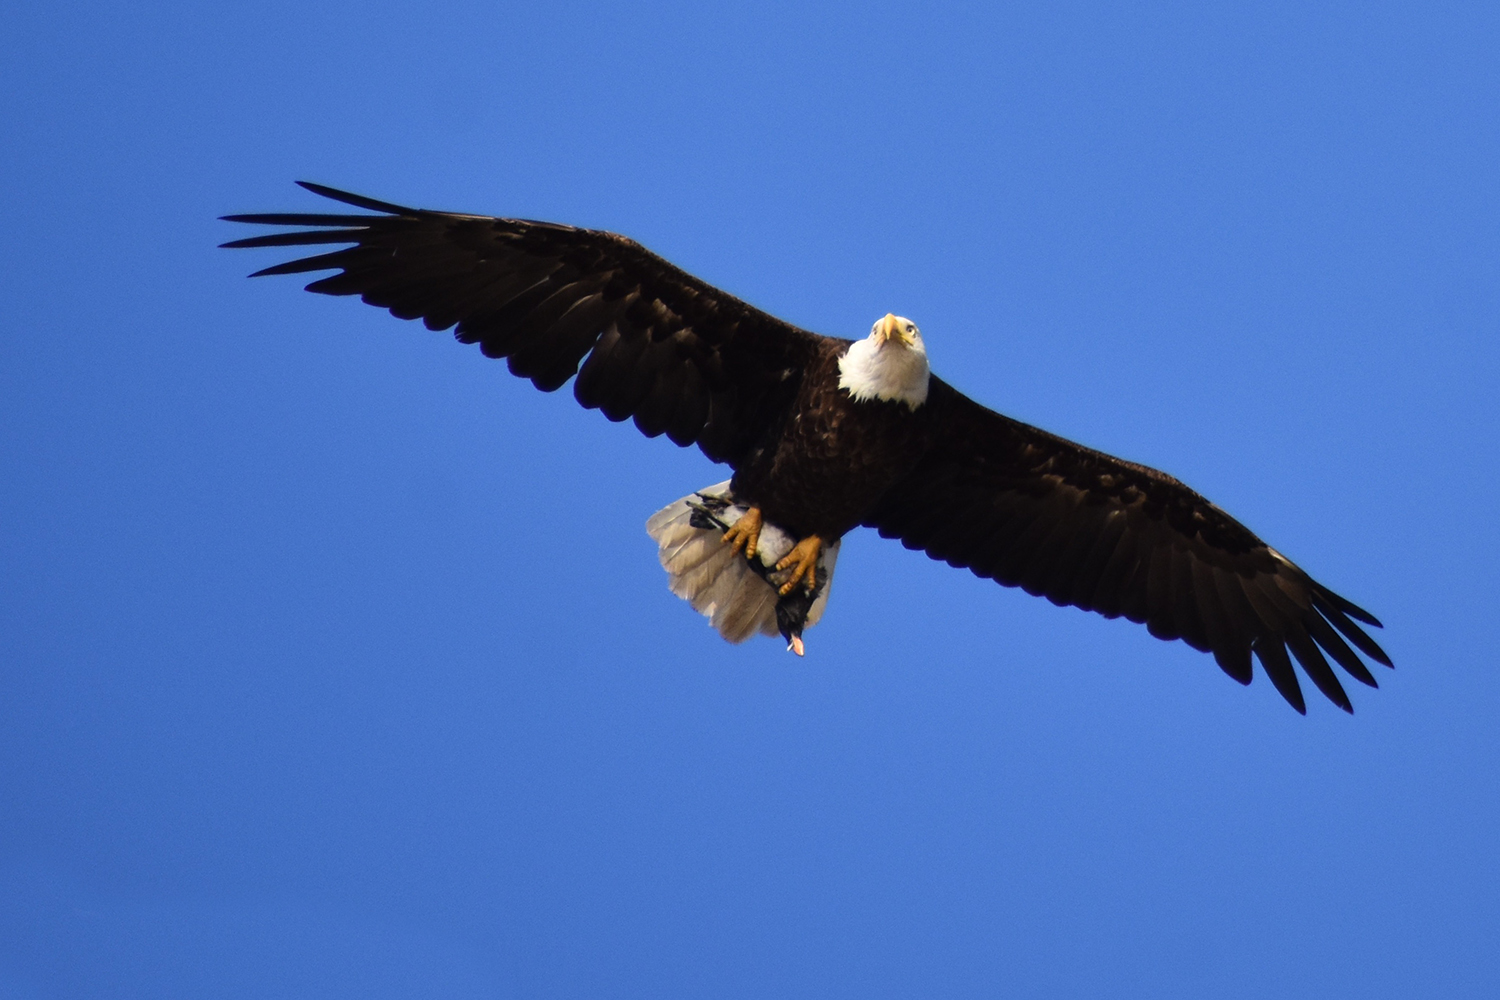 My 3-year old daughter, partner and I watched in amazement as several bald eagles picked off many birds one afternoon. They would glide just overhead with their catch. The prey nestled perfectly in the talons and just slightly smaller than the tail feathers of the eagle. (Dungeness Spit, July 2016). Photo courtesy of Lori Veres.